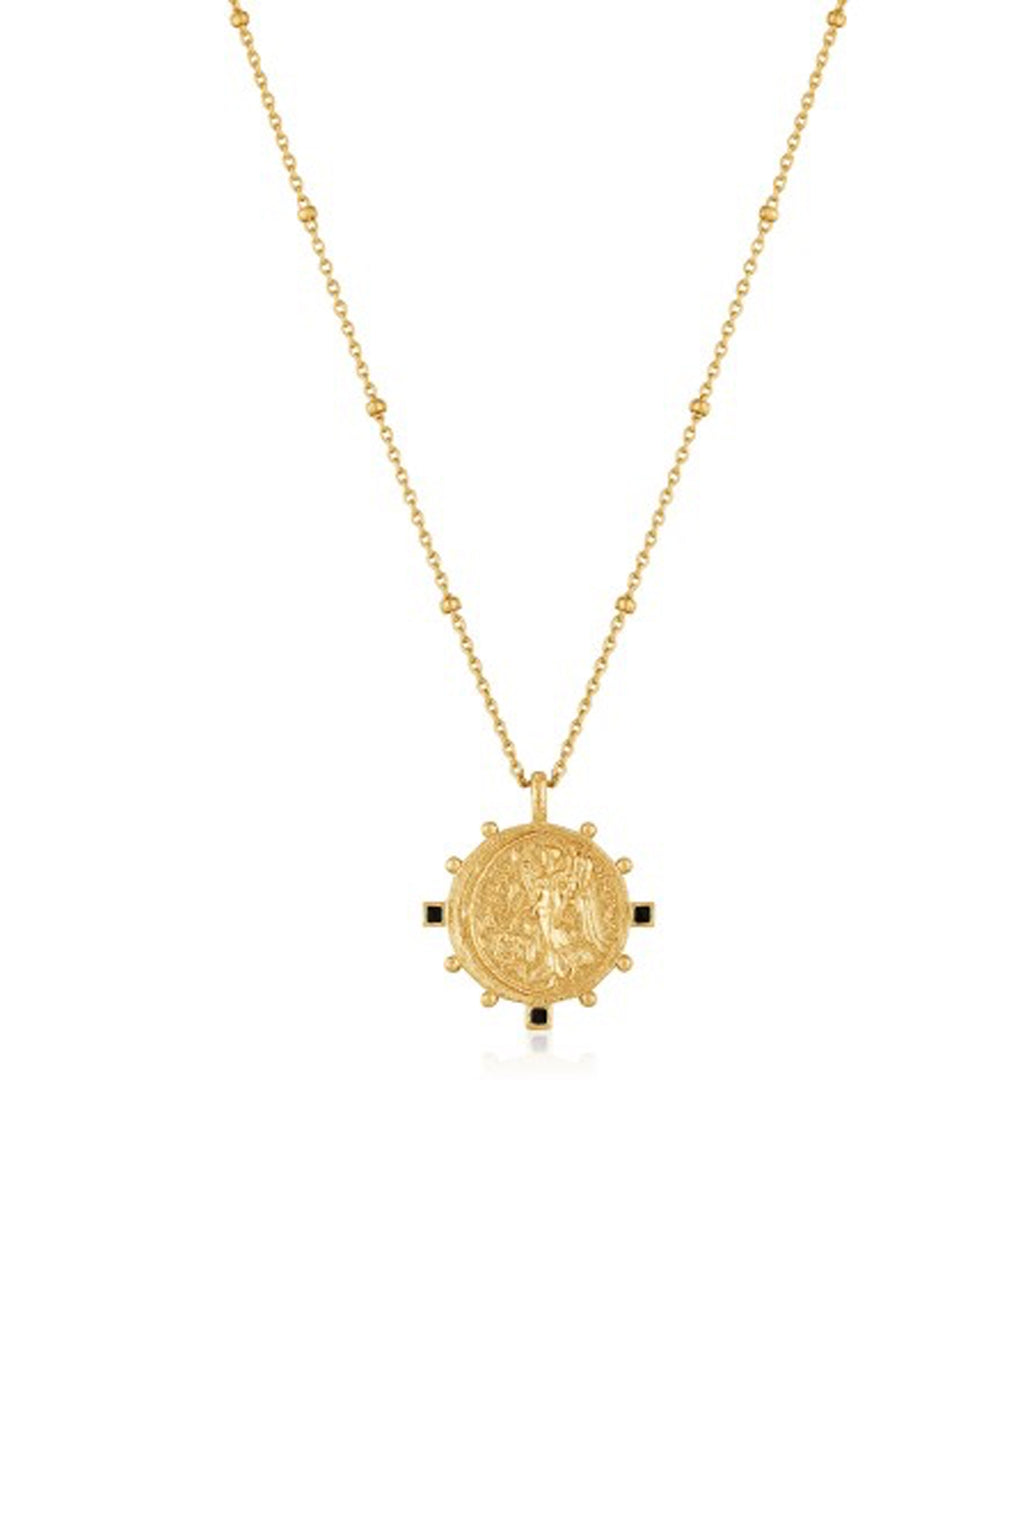 Ania Haie Victory Goddess Necklace - The Mercantile London